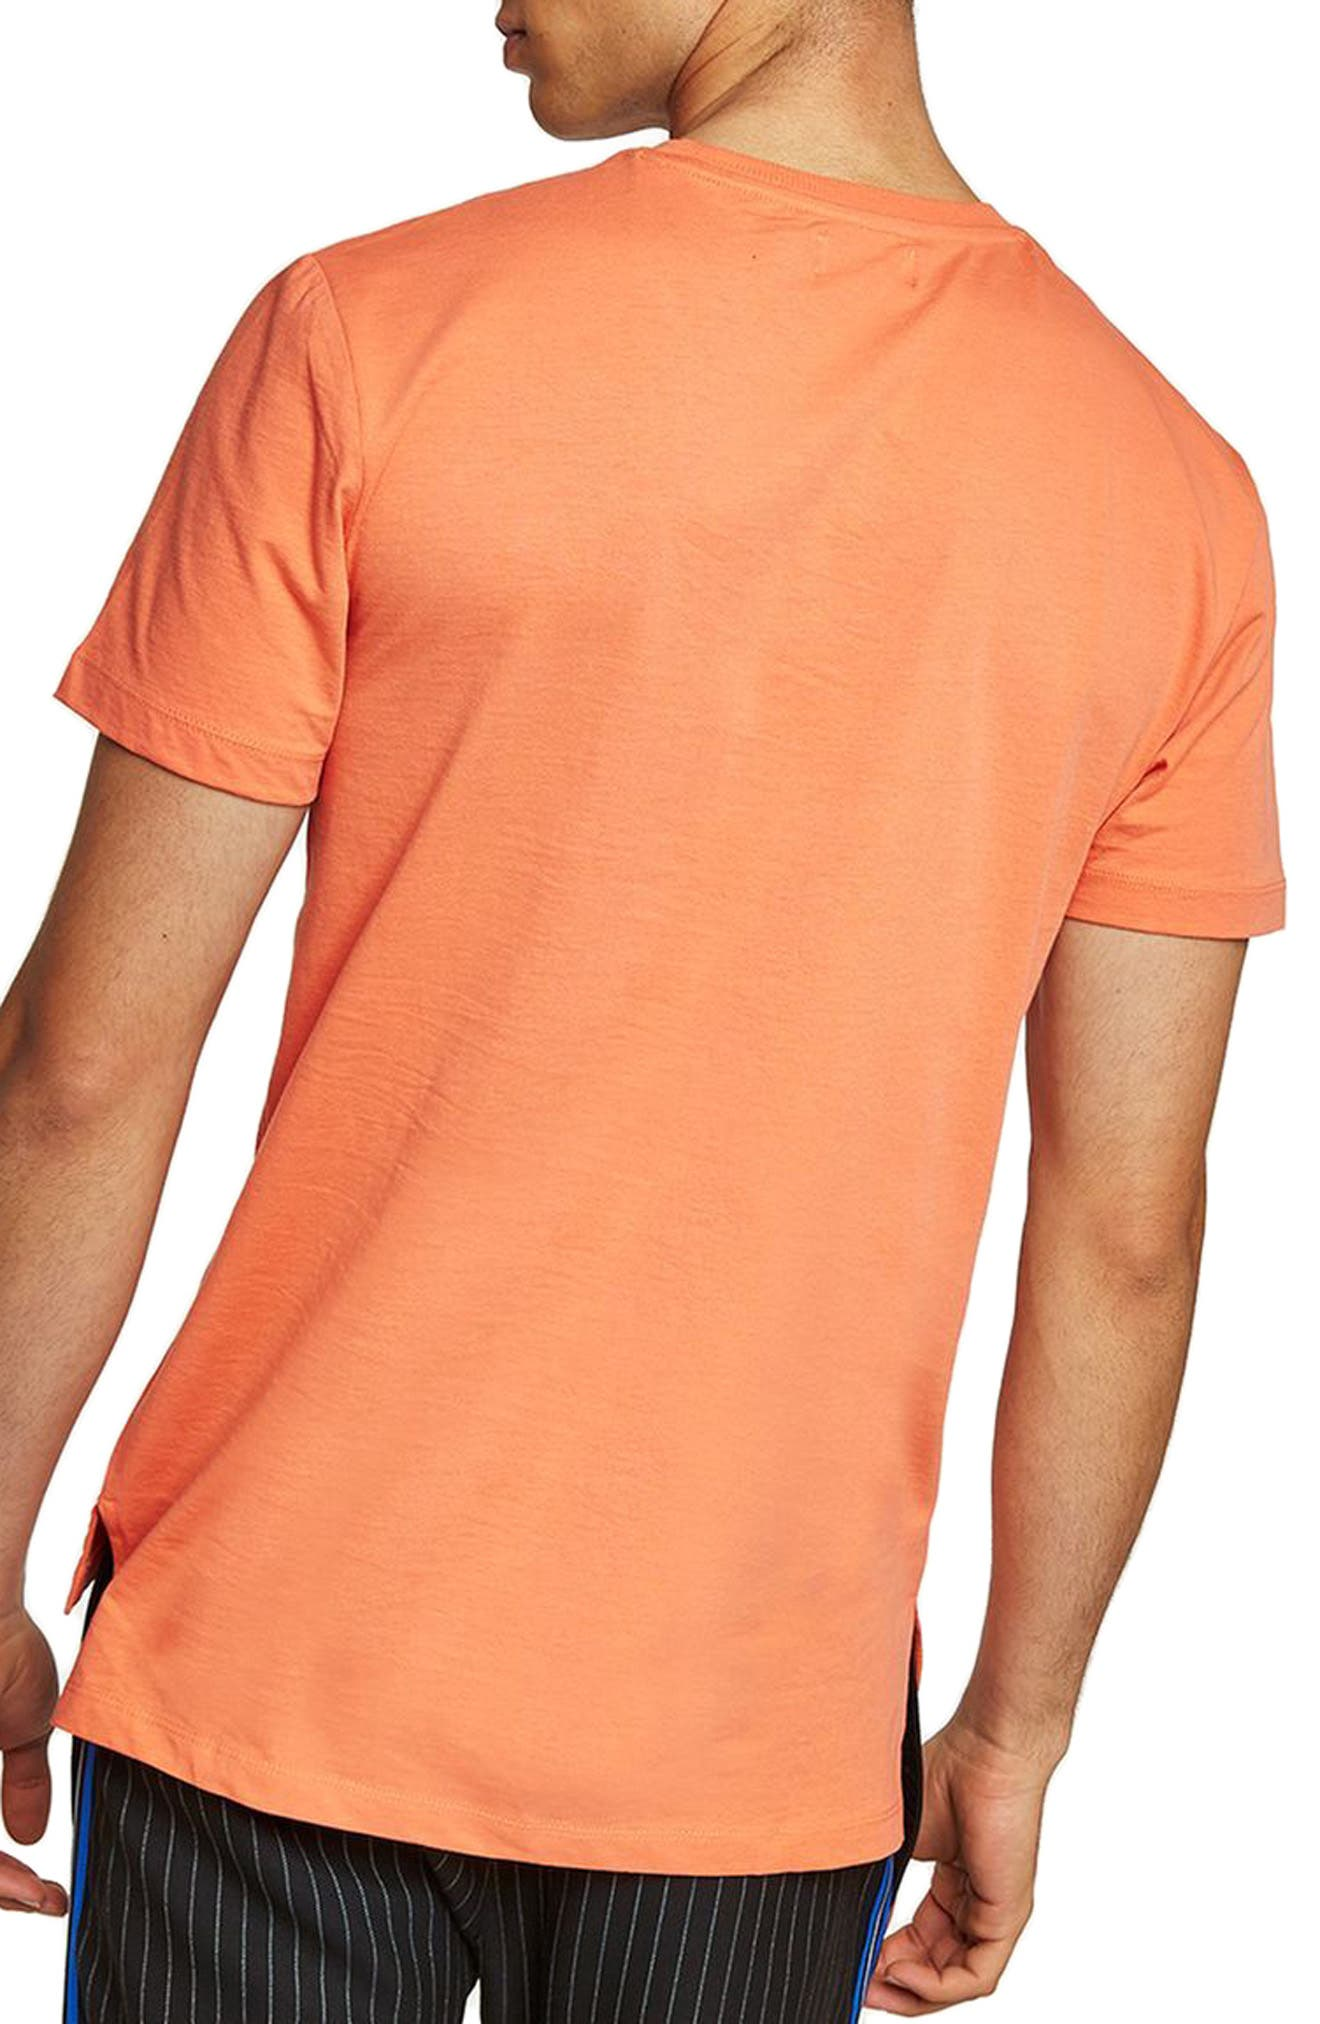 Ensign Graphic T-Shirt,                         Main,                         color,